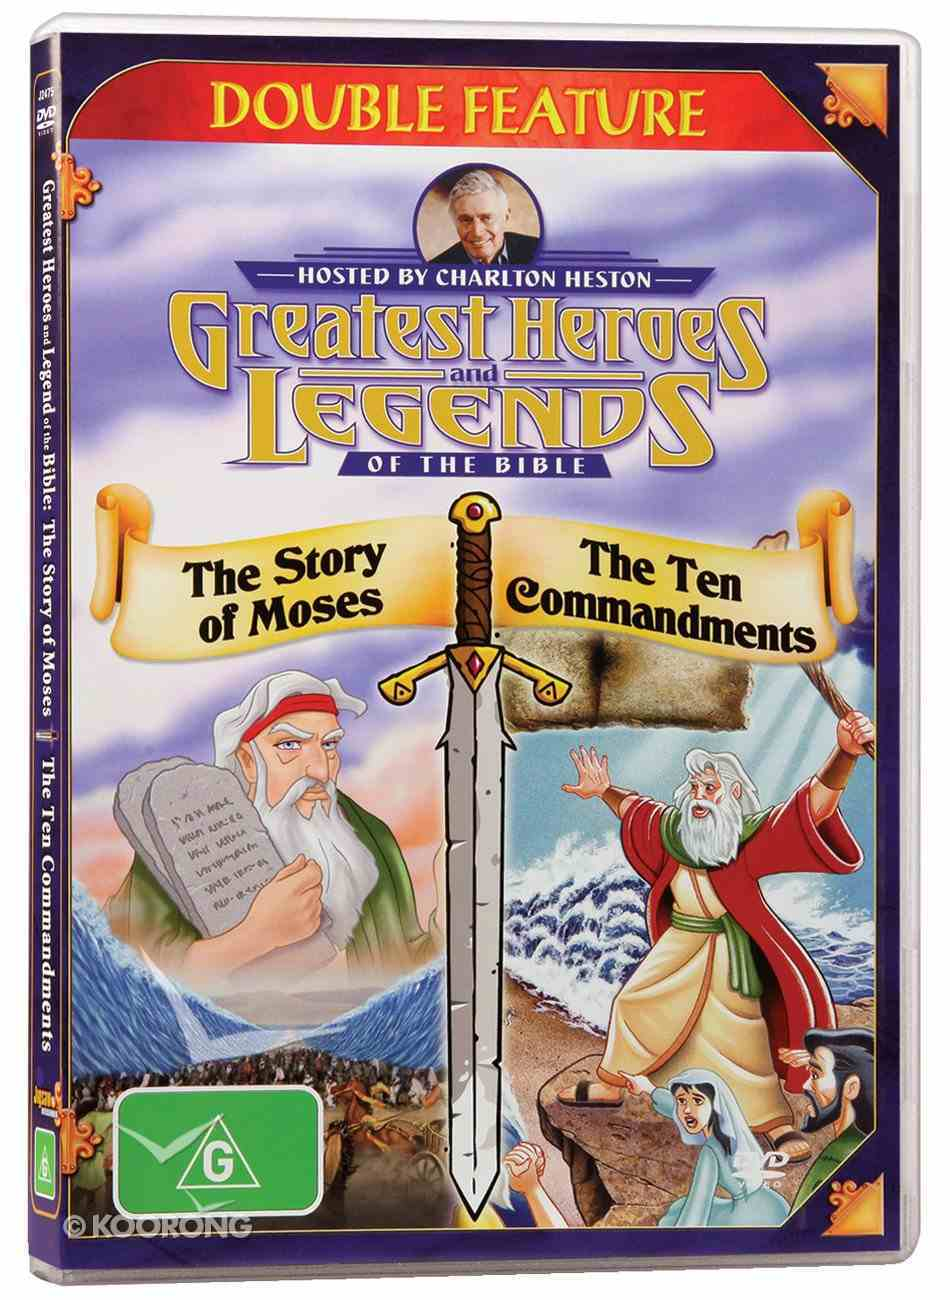 Story of Moses/Ten Commandments (Greatest Heroes & Legends Of The Bible Series) DVD